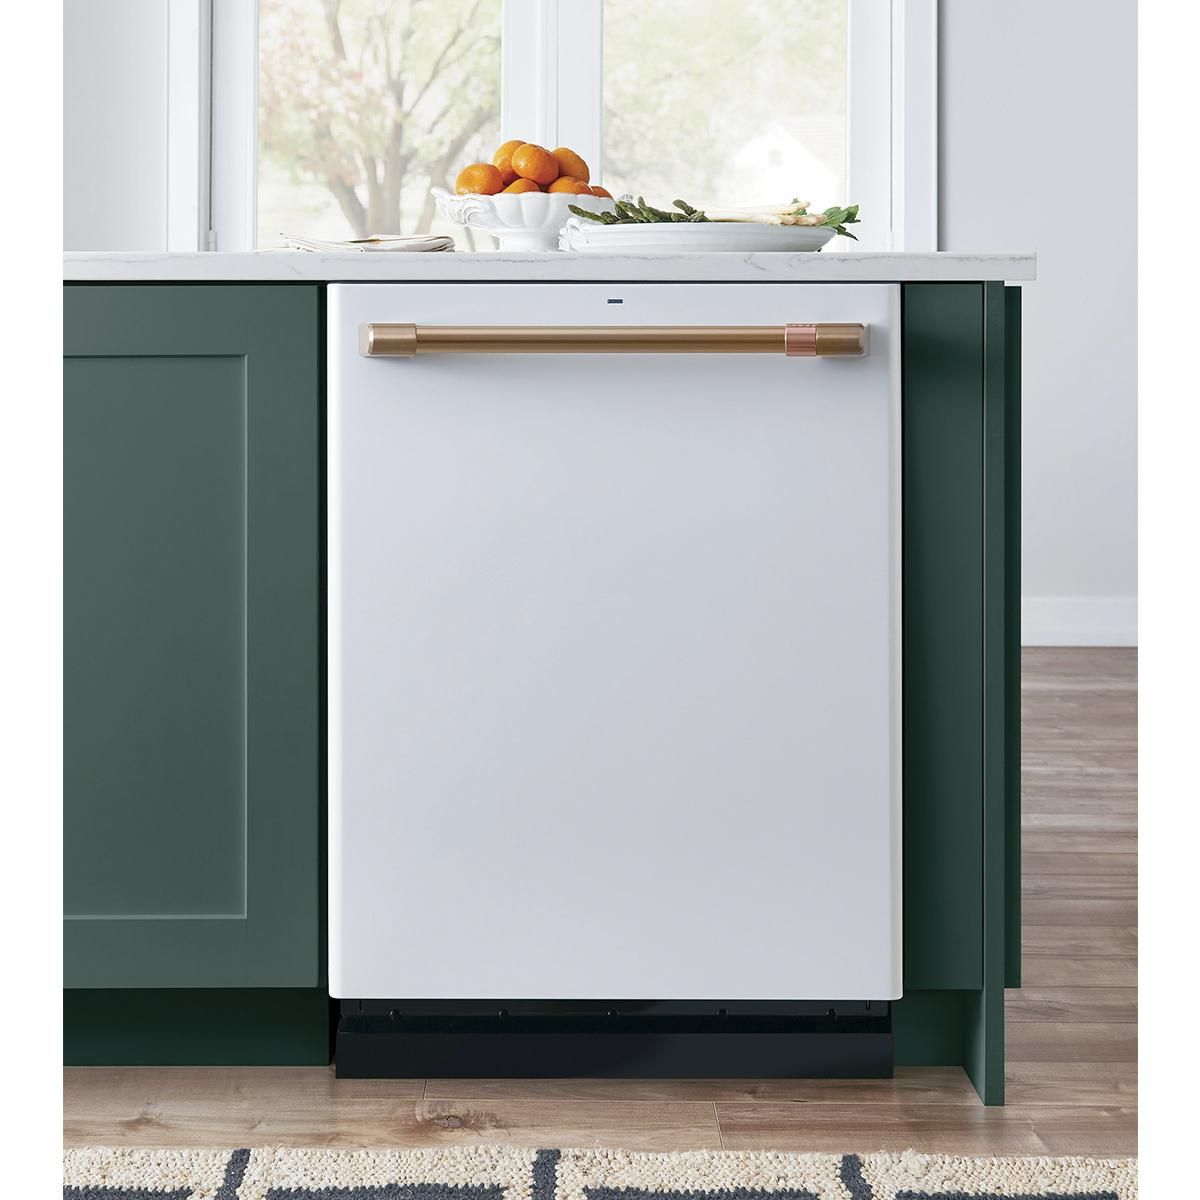 Ge Cafe Stainless Interior Built In Dishwasher In Matte White And